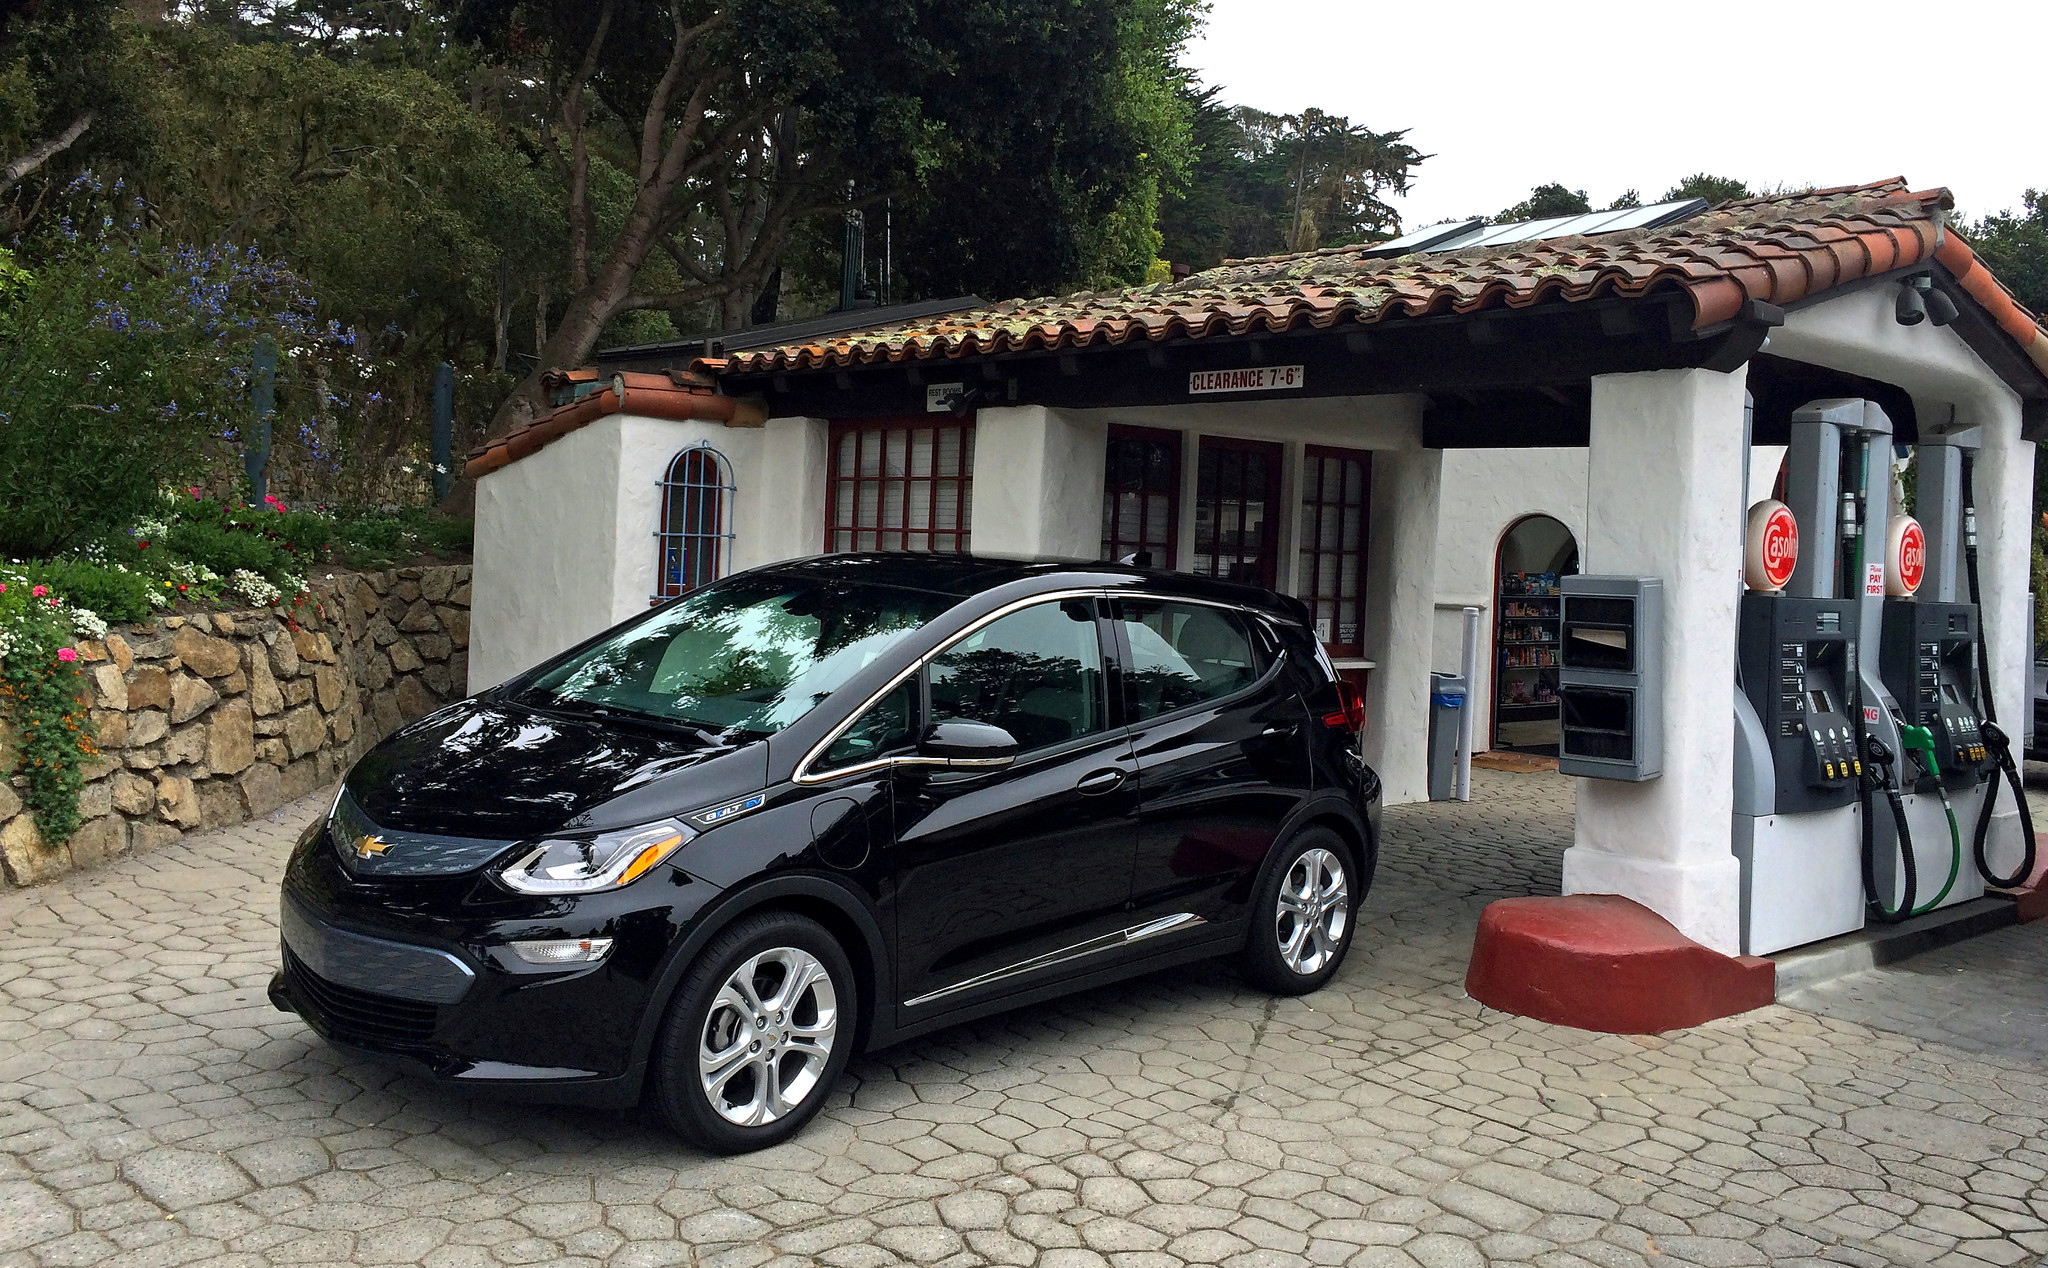 No gas required: The plug-in Bolt EV charges at the rate of about 30 miles of range per hour on a 240-volt system.